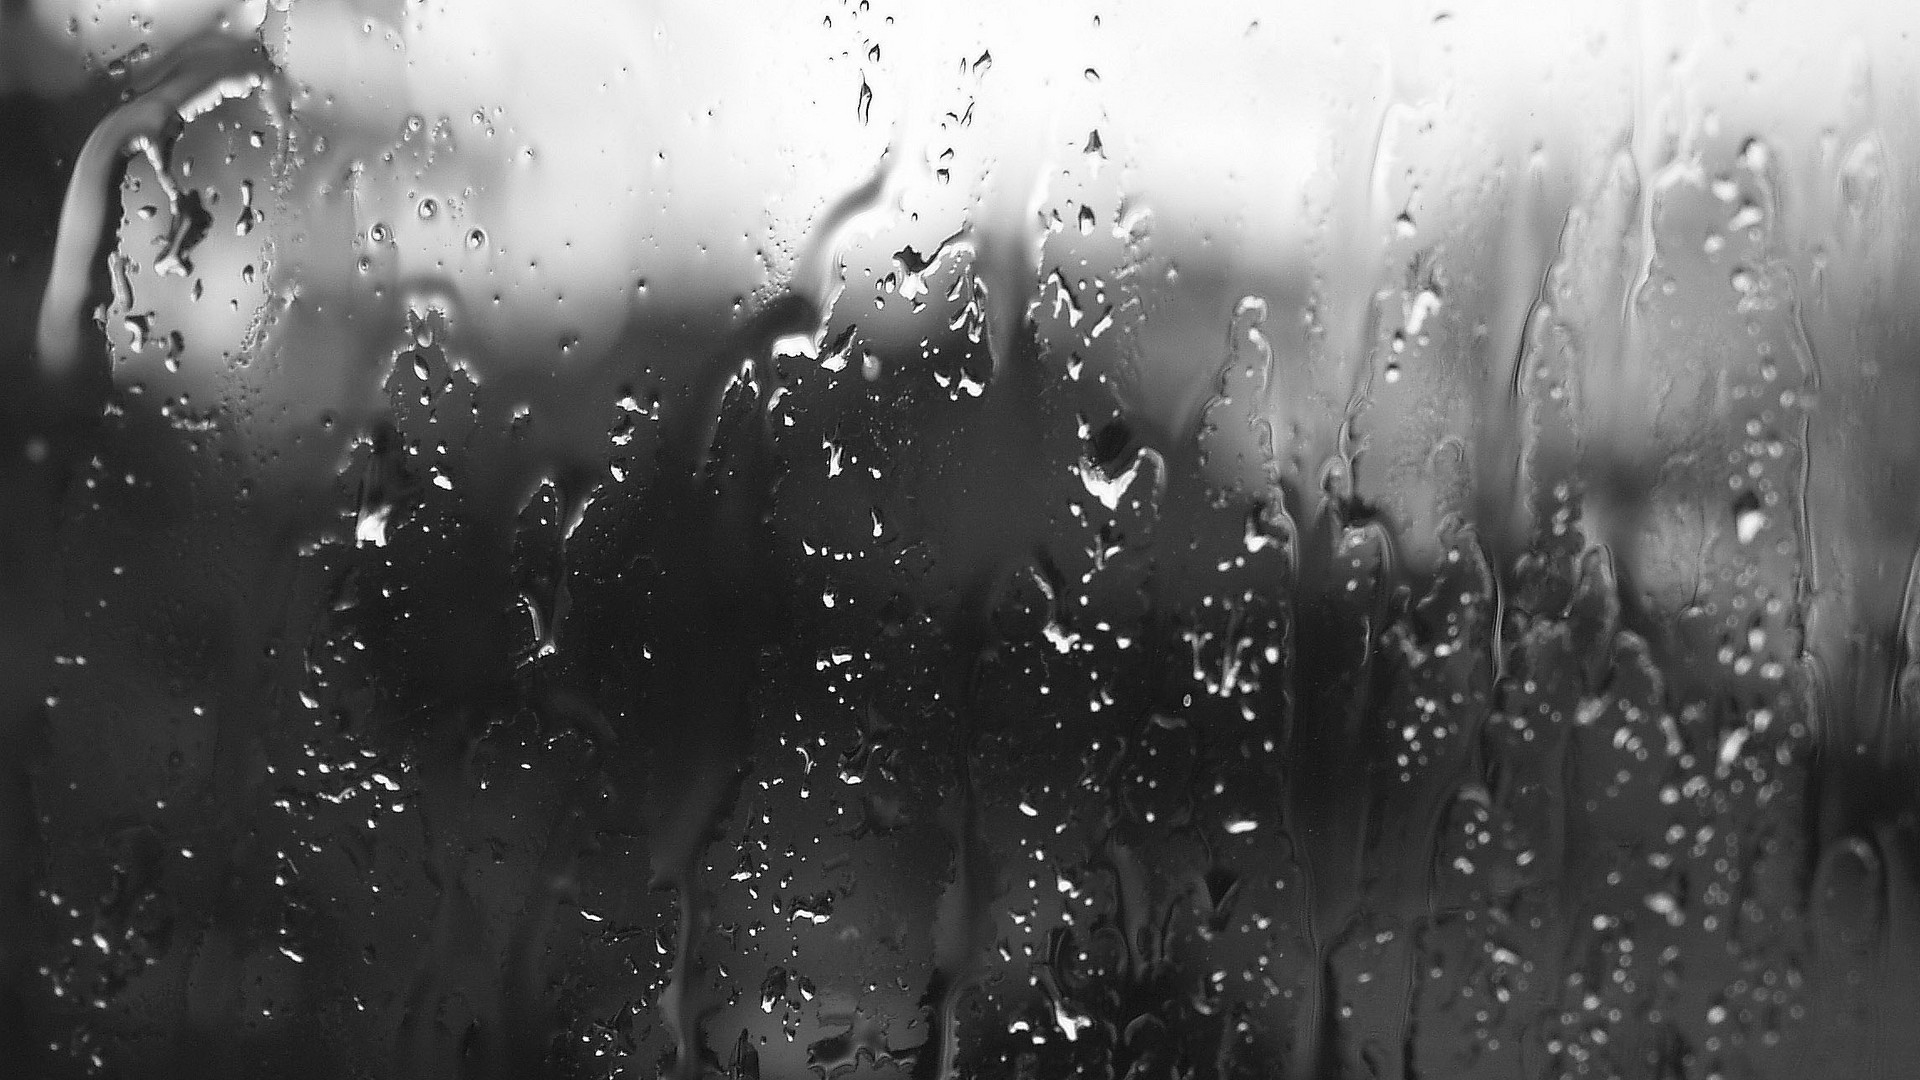 1920x1080 Rain on Glass desktop PC and Mac wallpaper: wallpaperstock.net/rain-on-glass_wallpapers_34000_1920x1080_1.html